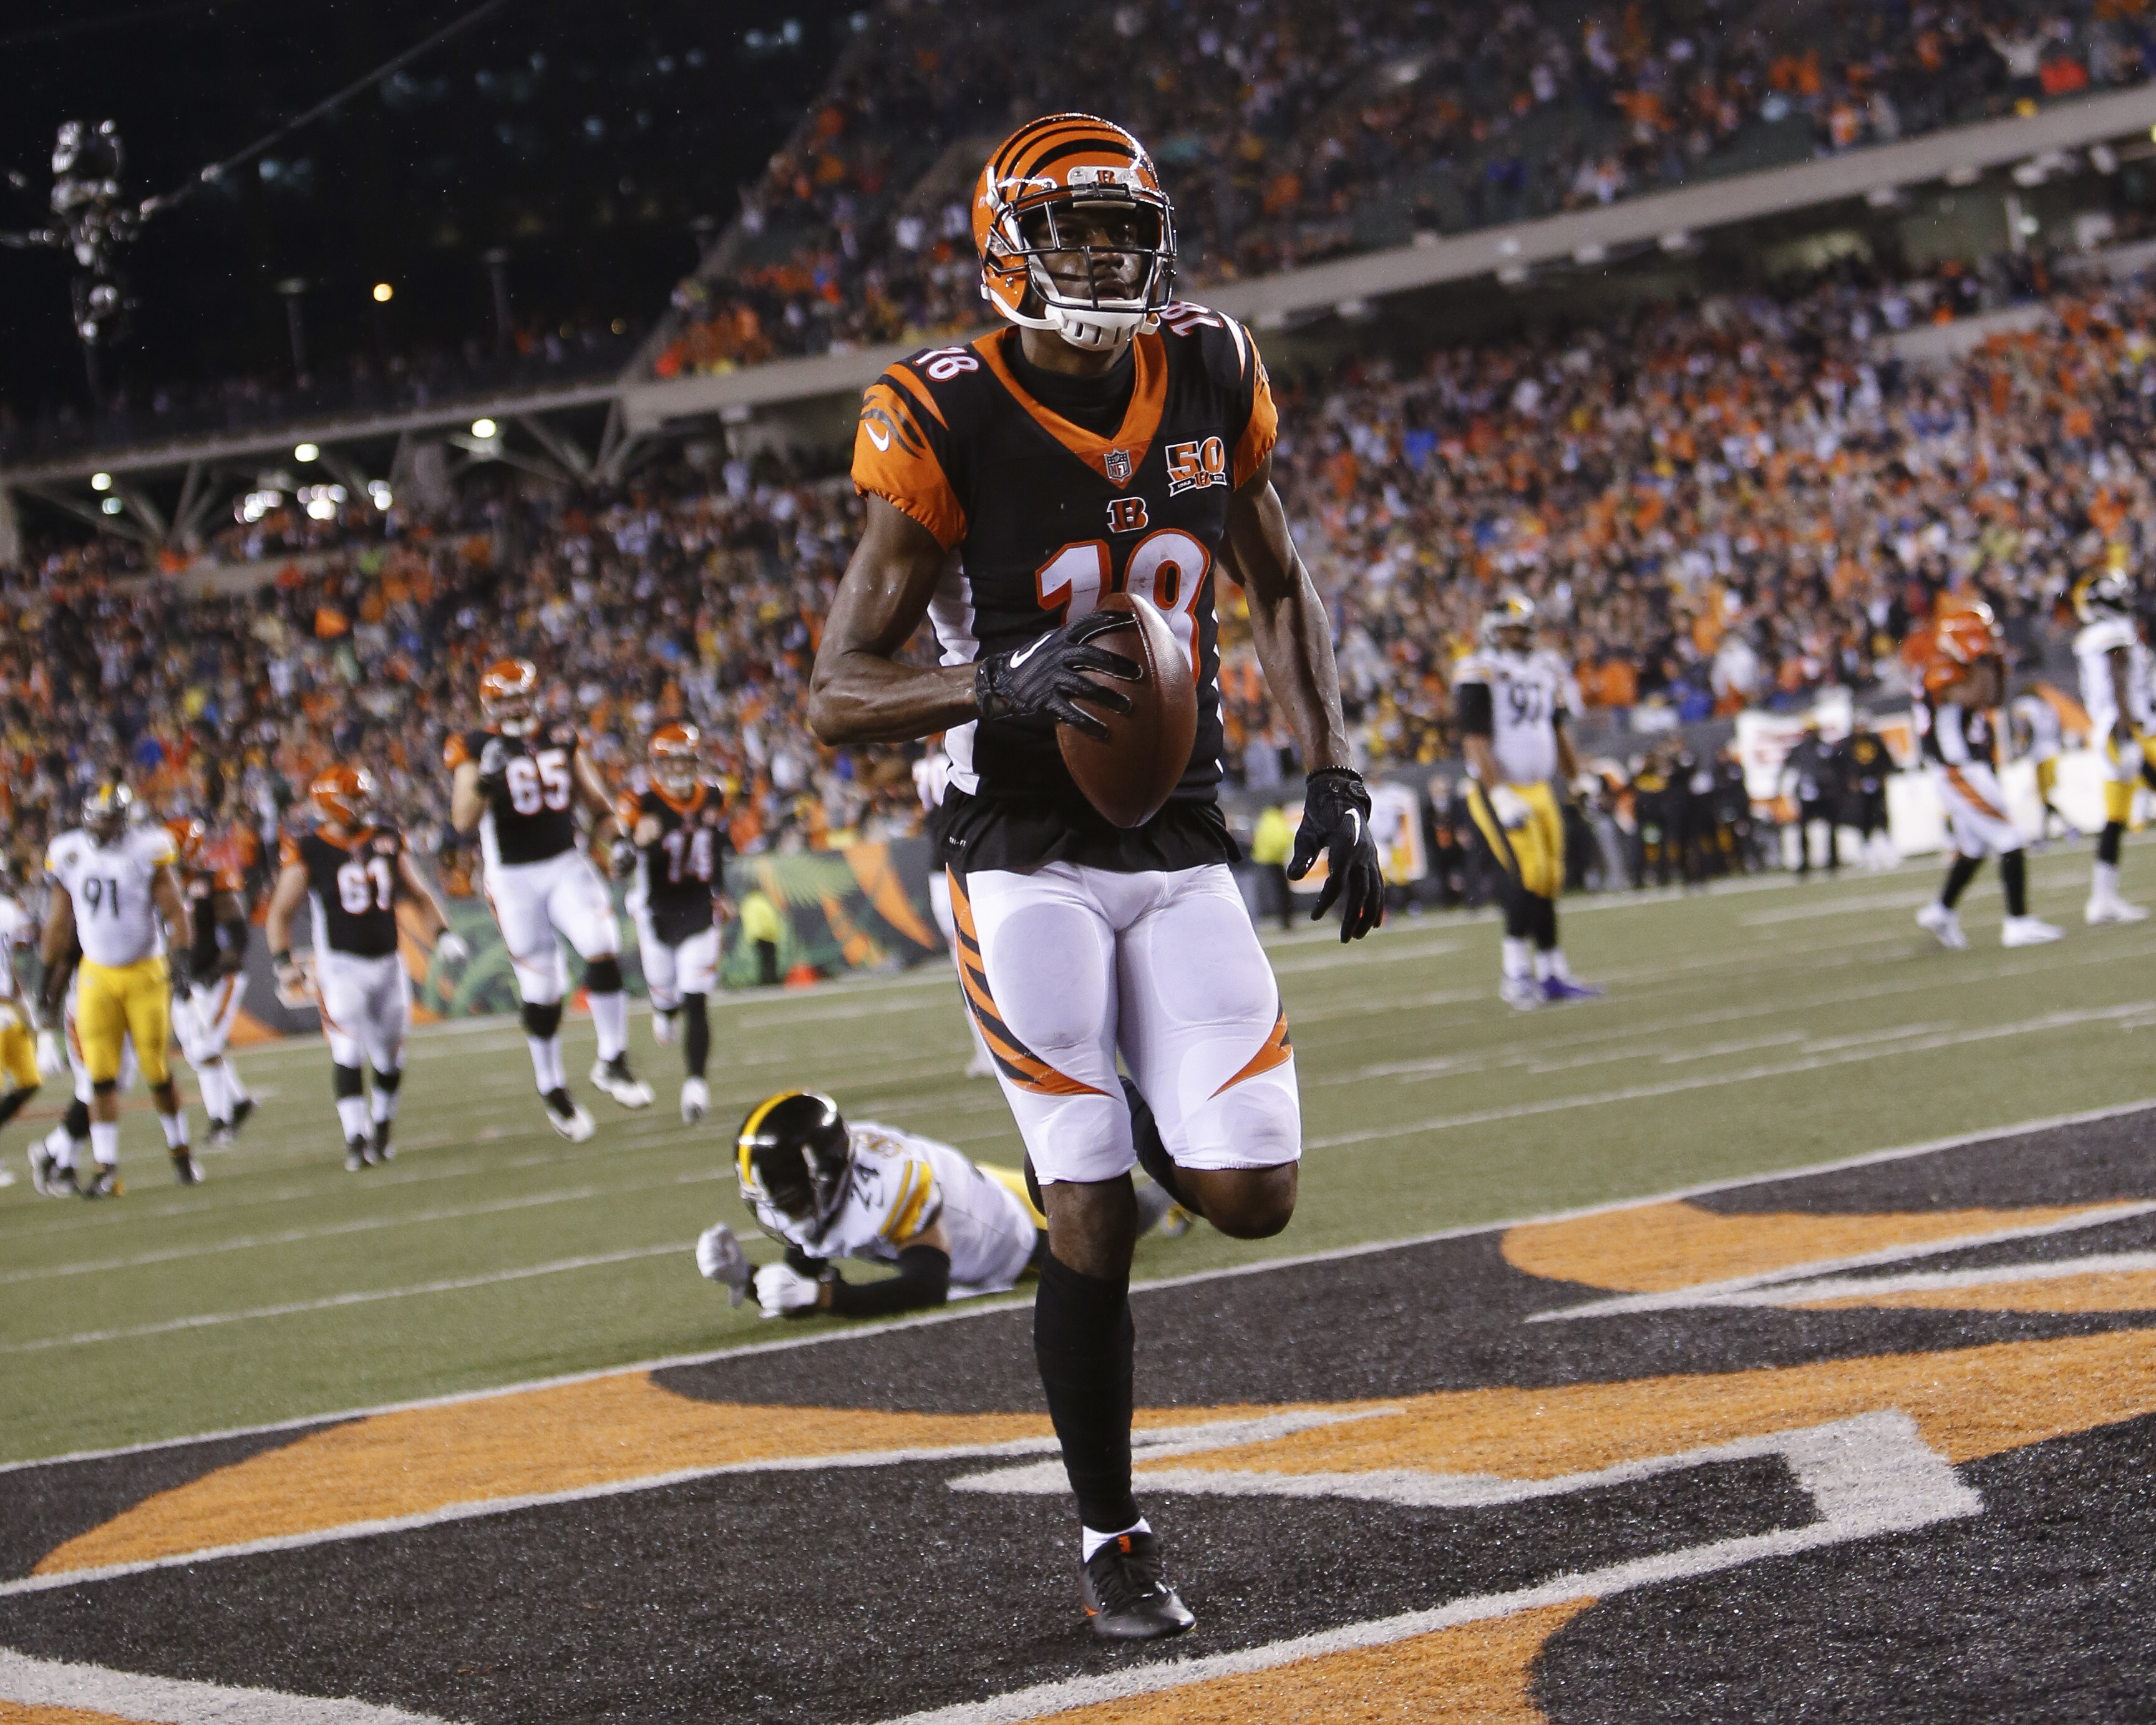 Cincinnati Bengals wide receiver A.J. Green (18) runs in a touchdown against Pittsburgh Steelers cornerback Coty Sensabaugh (24) in the first half of an NFL football game, Monday, Dec. 4, 2017, in Cincinnati. (AP Photo/Frank Victores)